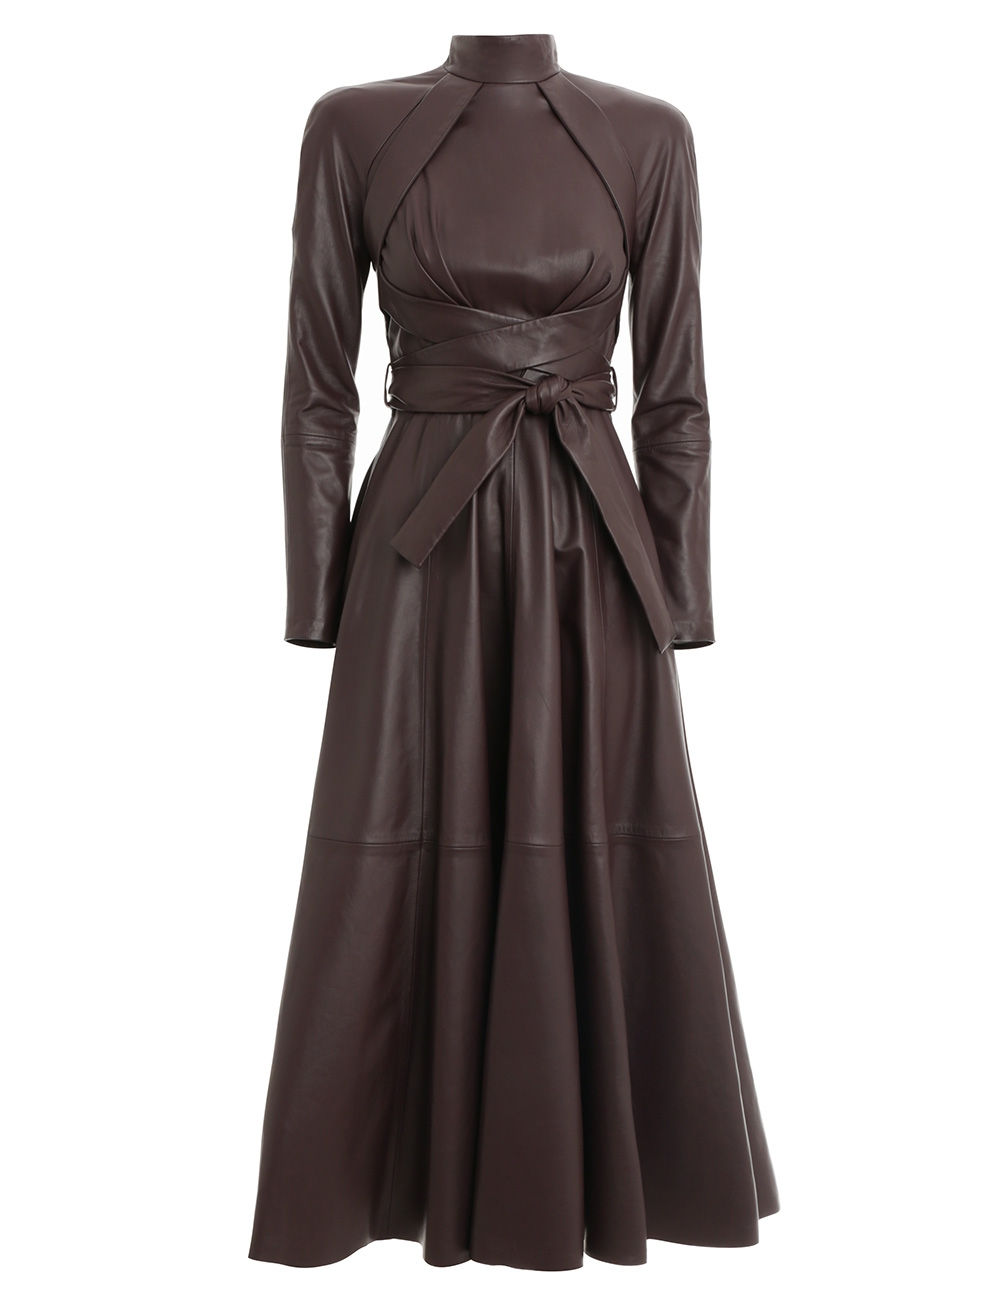 Resistance Leather Dress